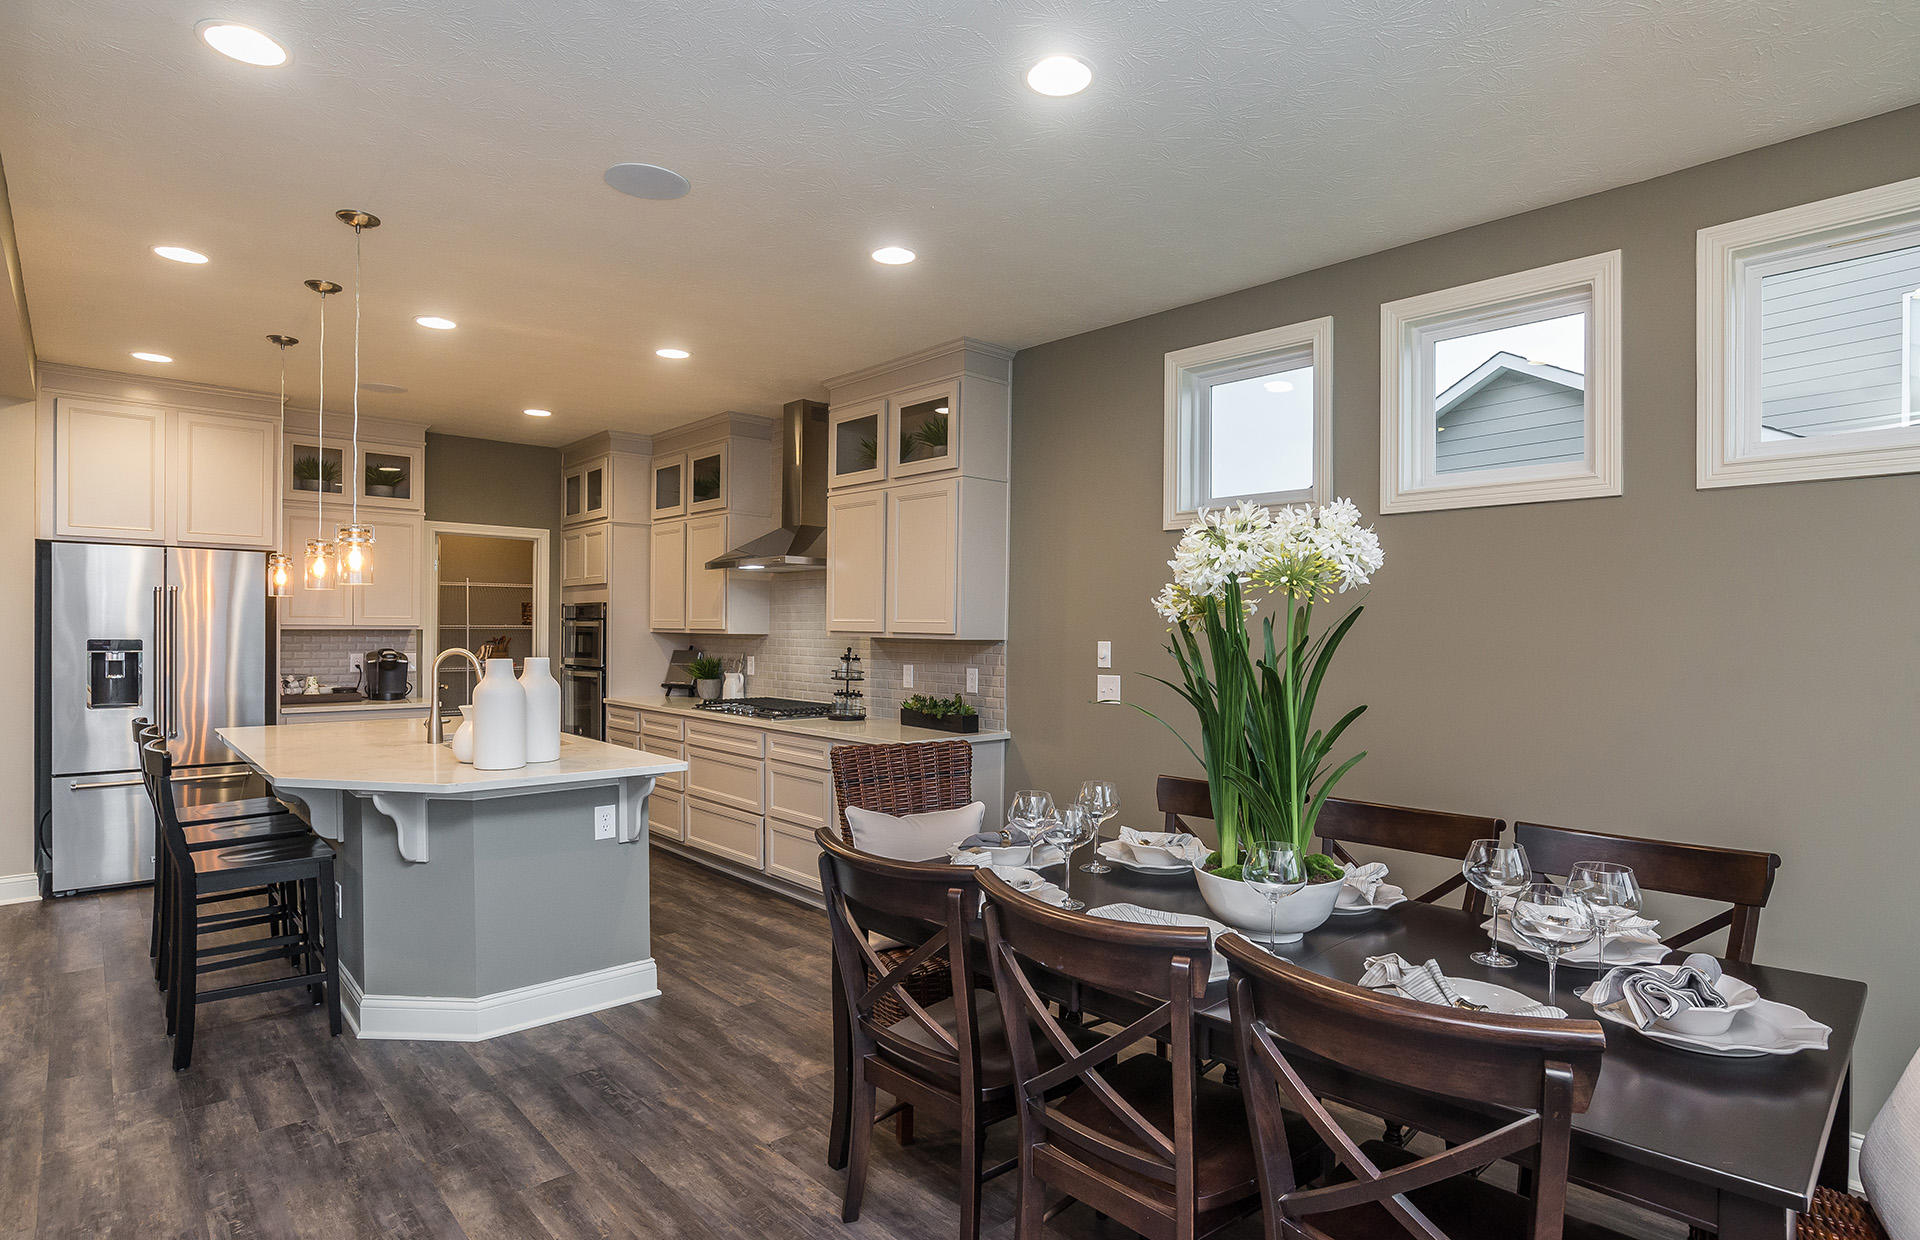 Bear Creek by Pulte Homes image 0